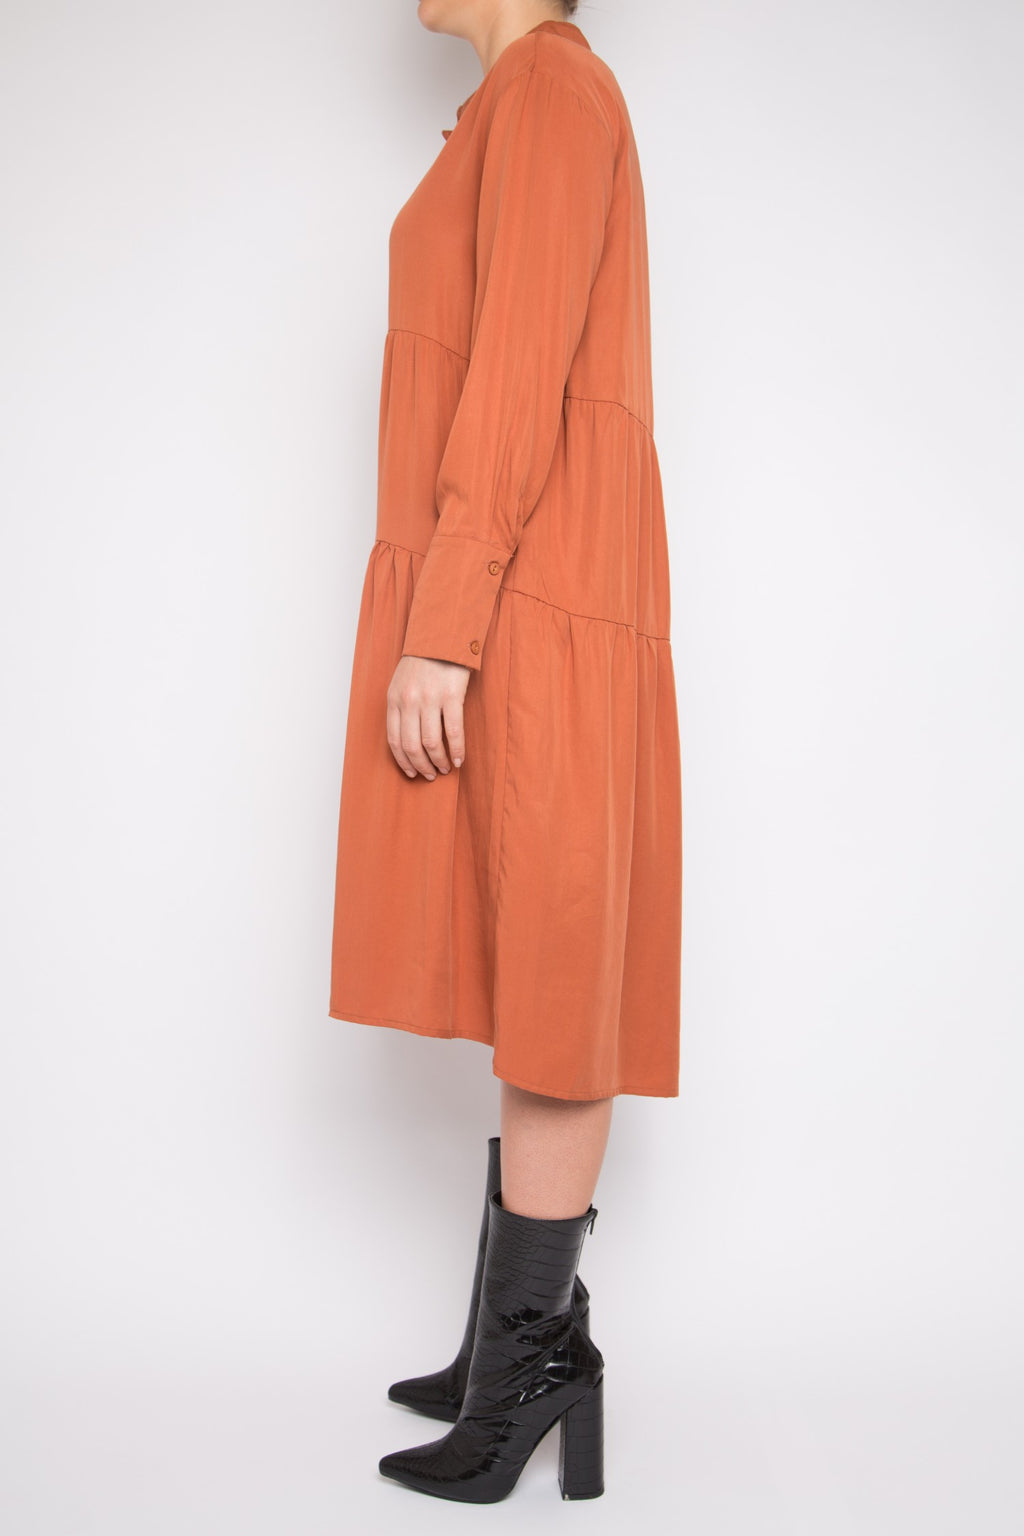 Ruan Dress in Amber